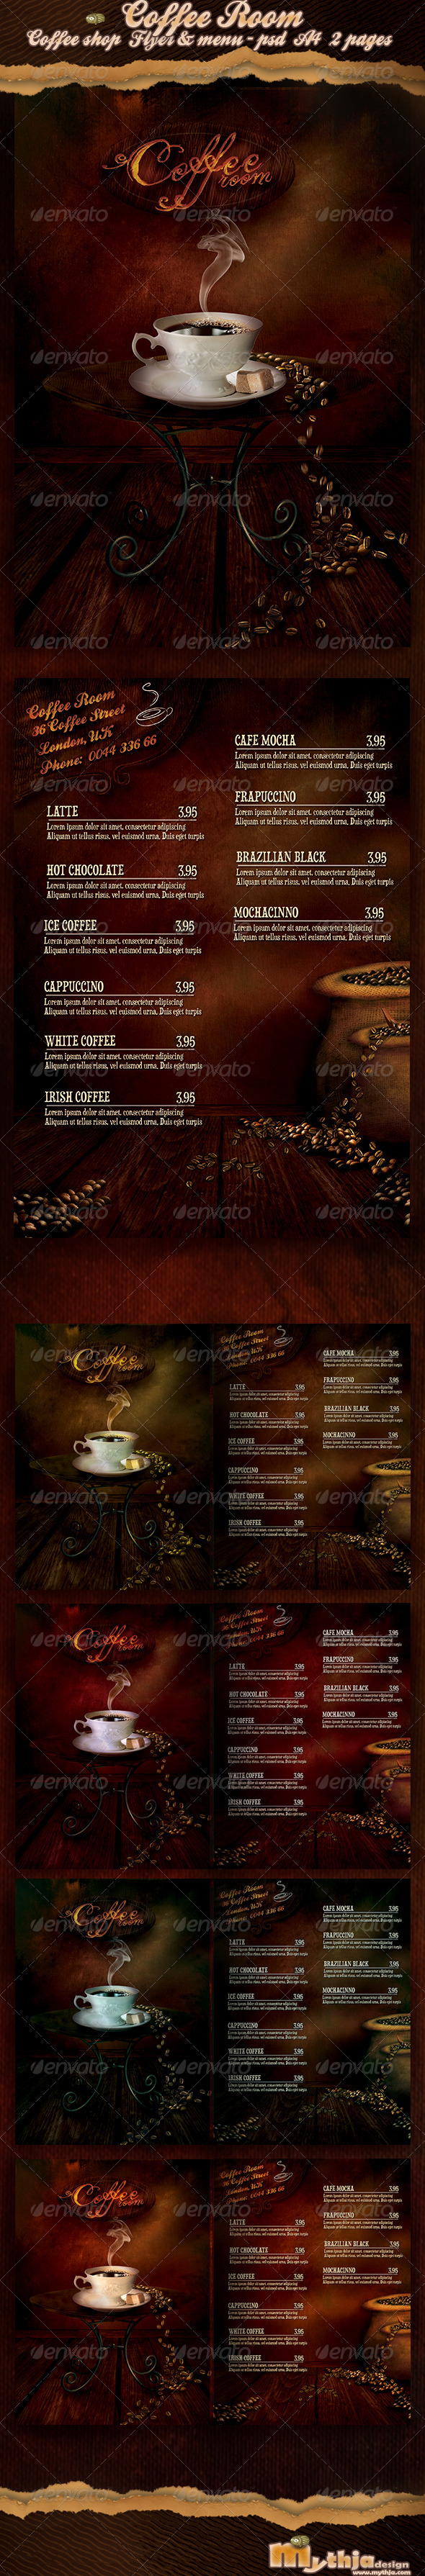 Coffee Room - Coffee Shop Flyer & Menu  - Food Menus Print Templates